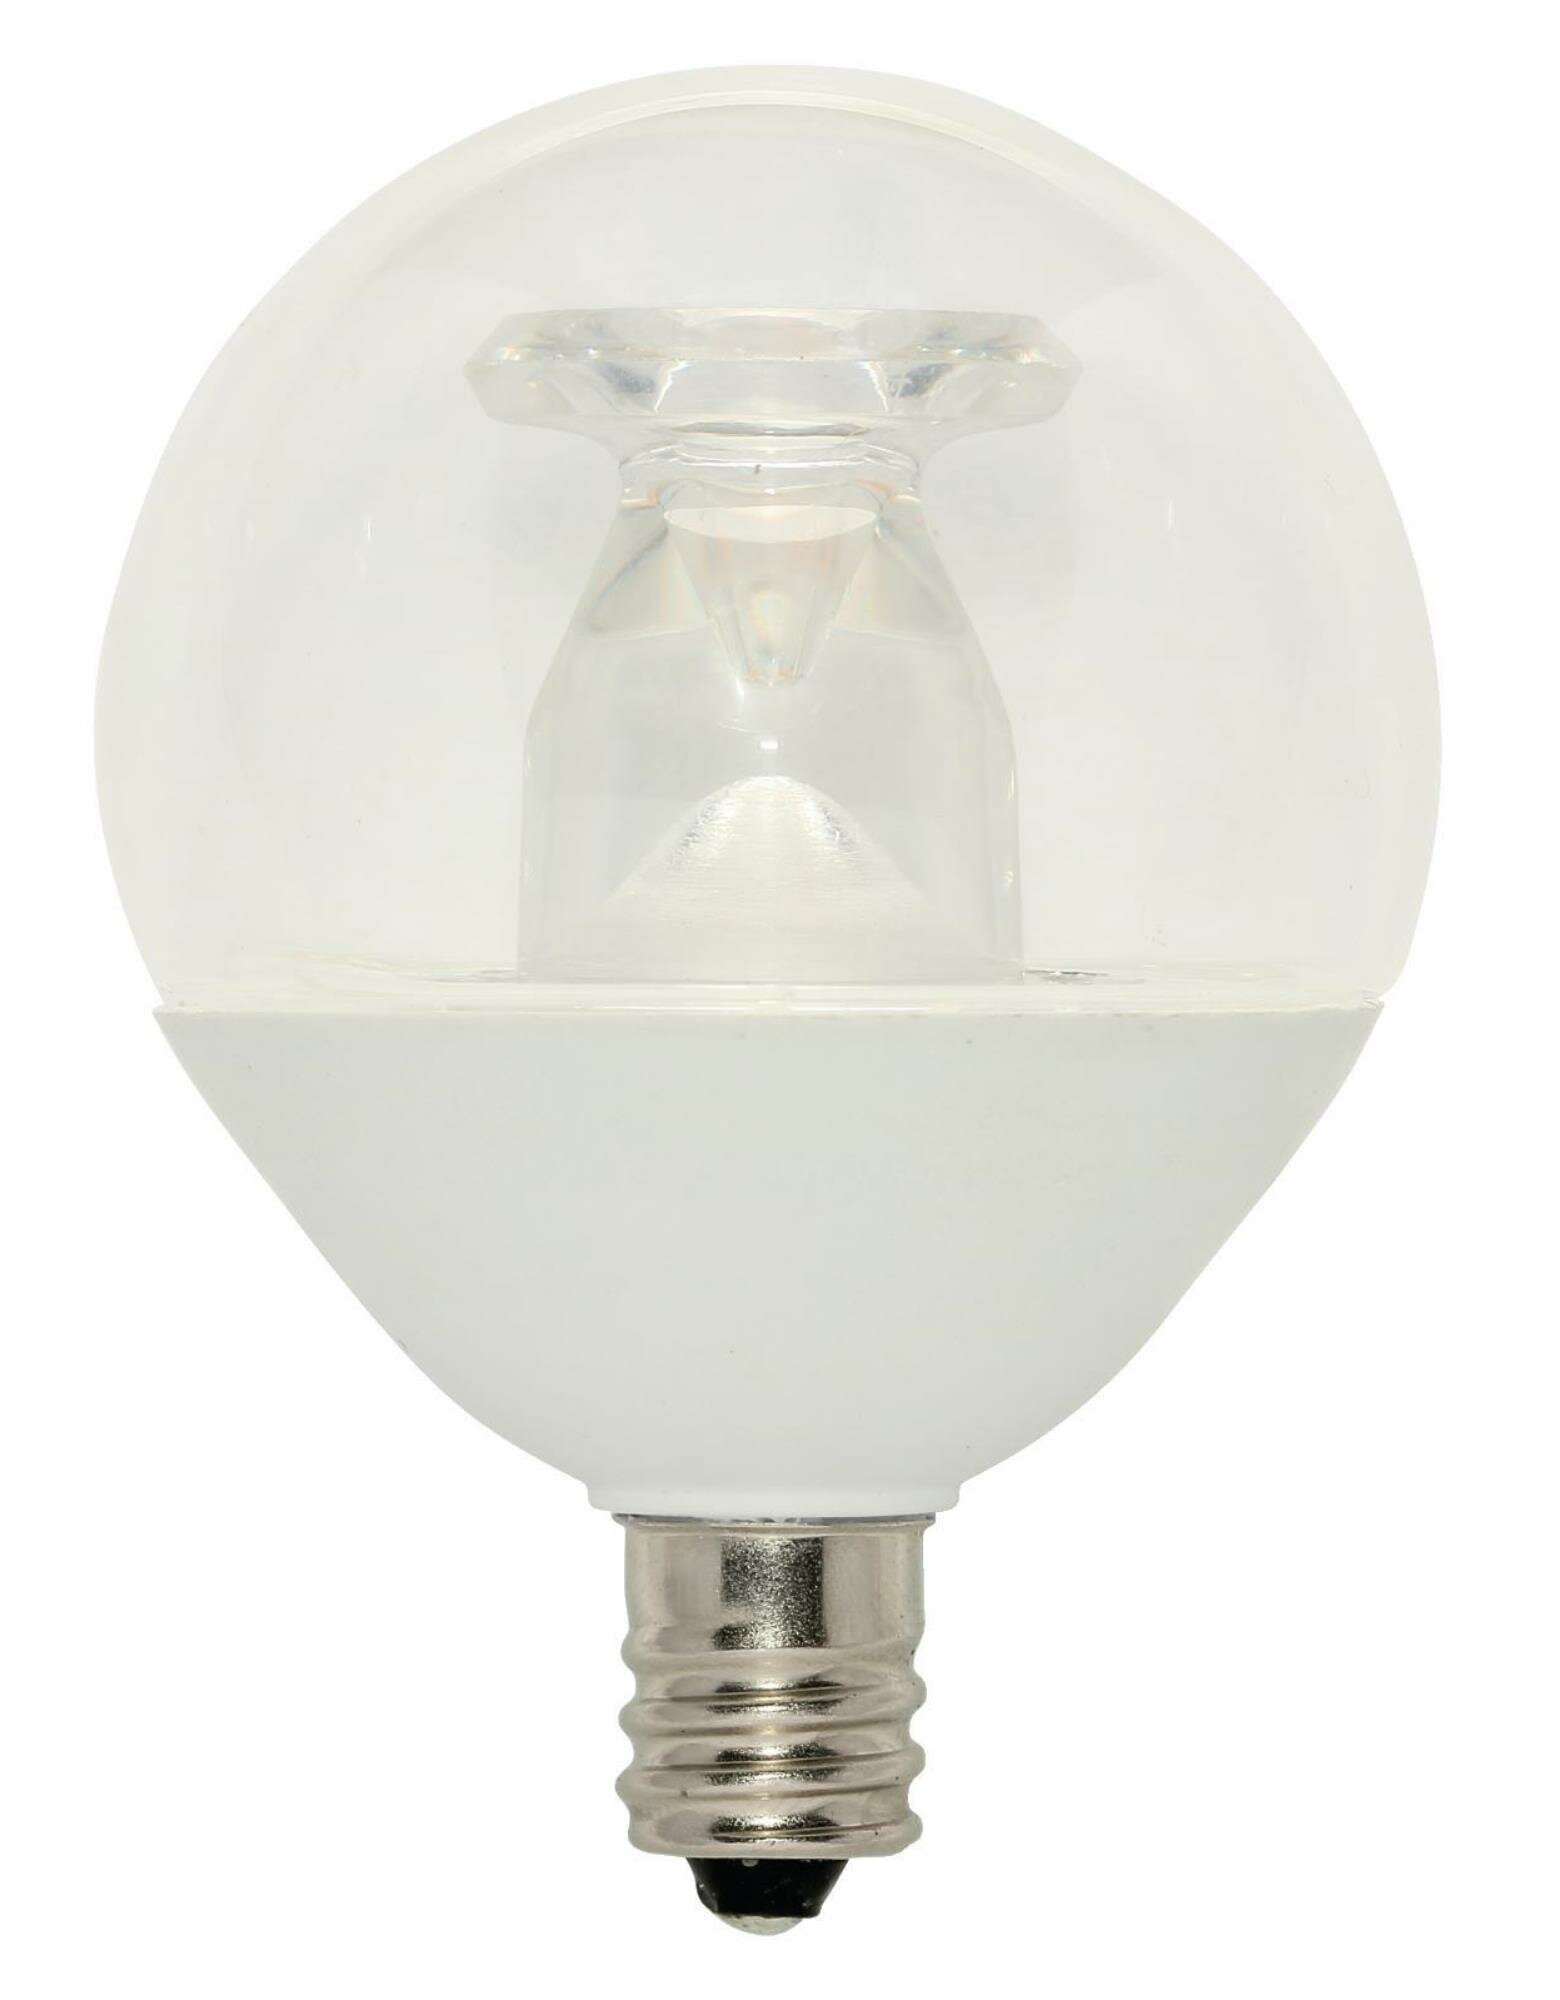 Westinghouse Lighting 60w Equivalent E12 Candelabra Led Globe Light Bulb Wayfair